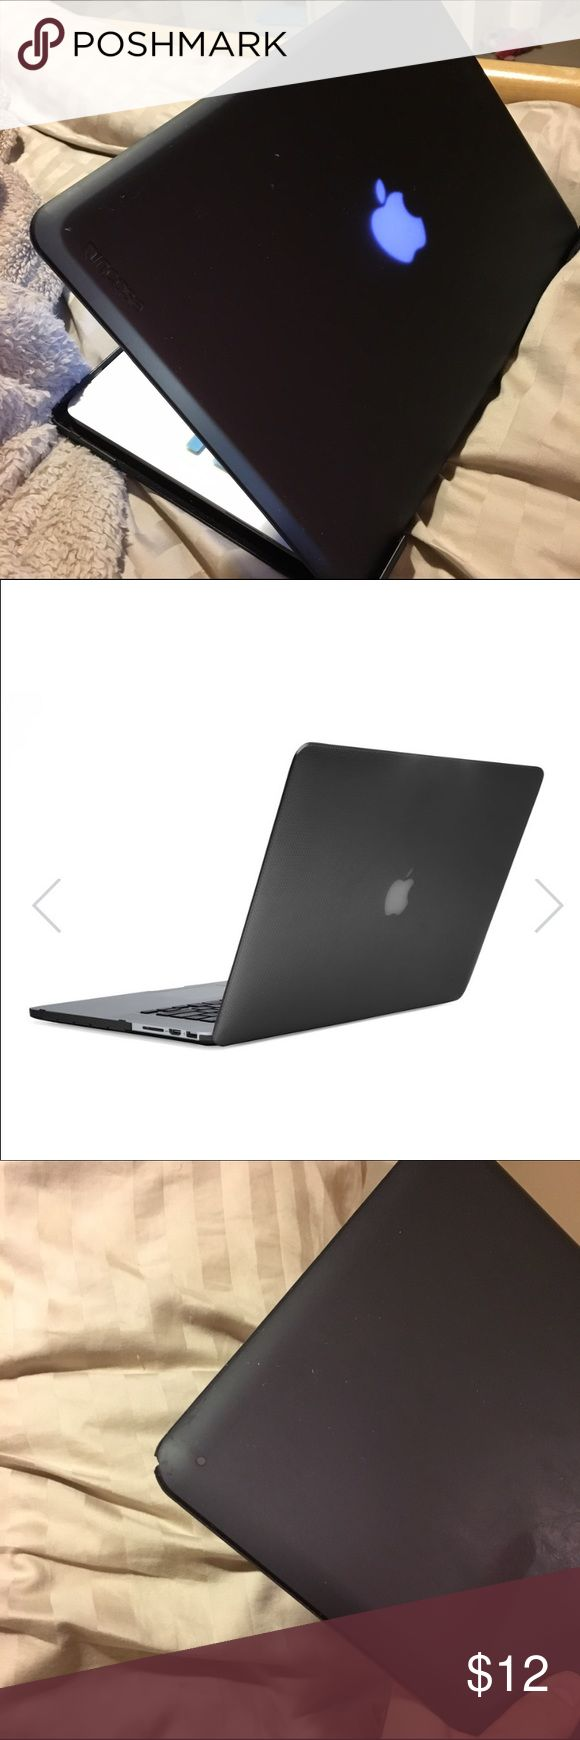 MacBook Pro case By Incase, fits second generation MacBook Pro that have the dimensions in the fourth picture. Third picture shows small imperfection. Works perfectly find and the color is matte frost black Accessories Laptop Cases